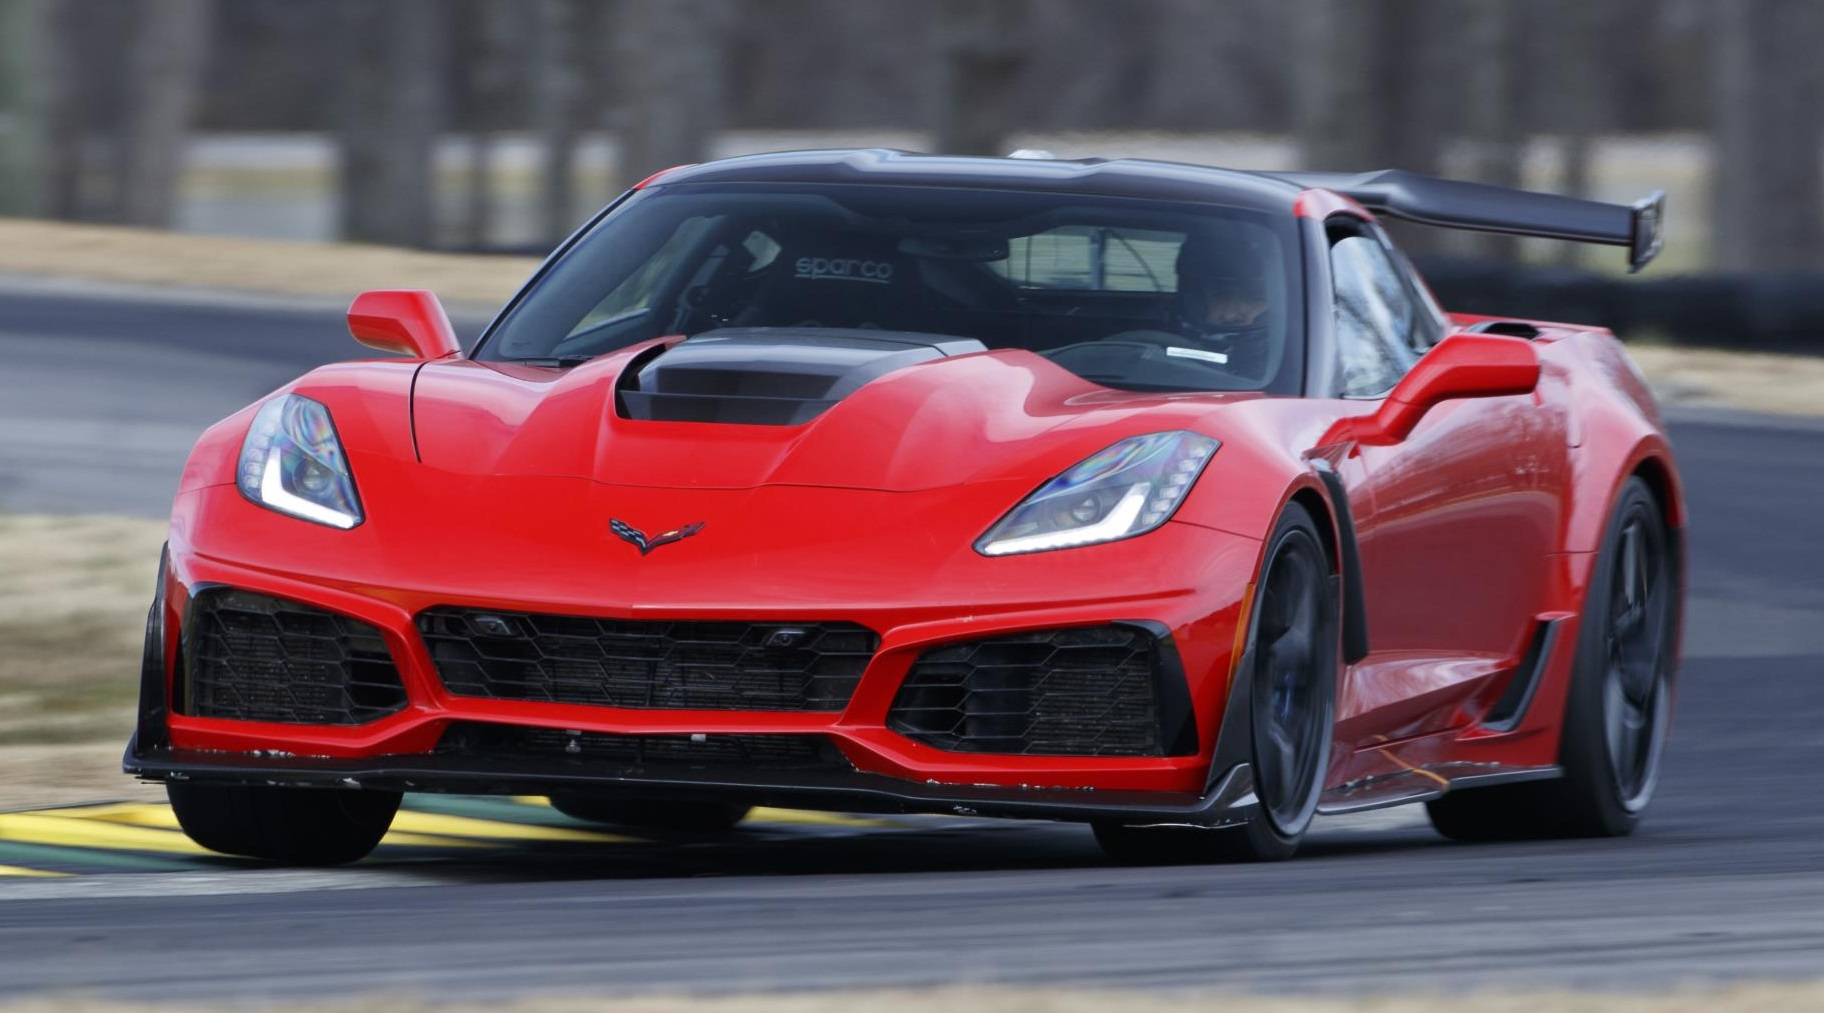 2019 Corvette Zr1 Sets Lap Record At Virginia